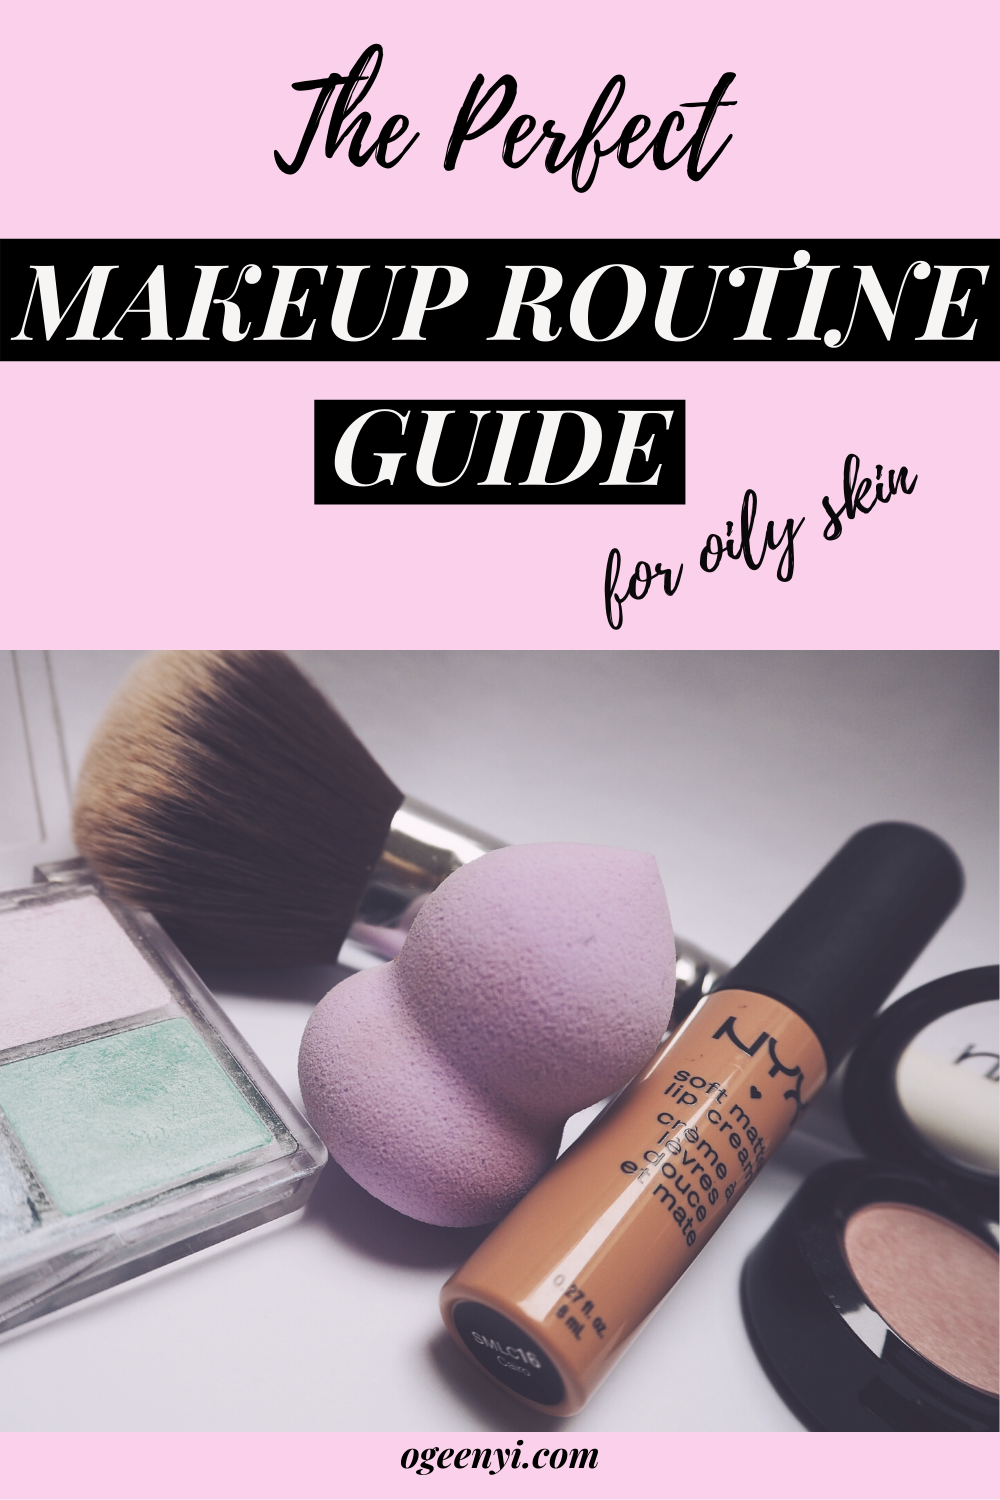 The Perfect Makeup Routine Guide for Oily Skin in 2020